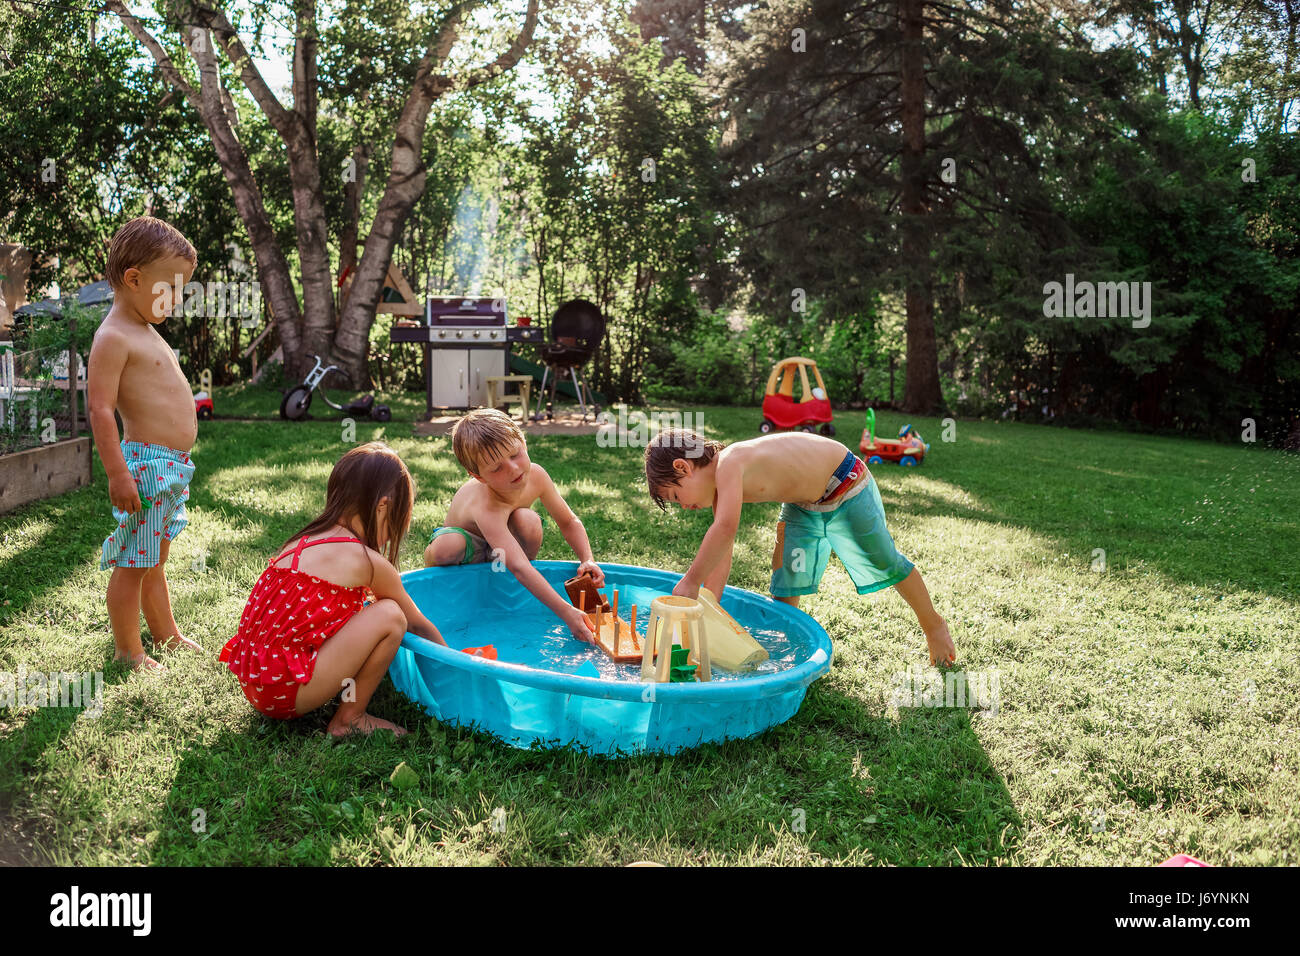 Paddling pool garden girl stock photos paddling pool for Best children s paddling pool